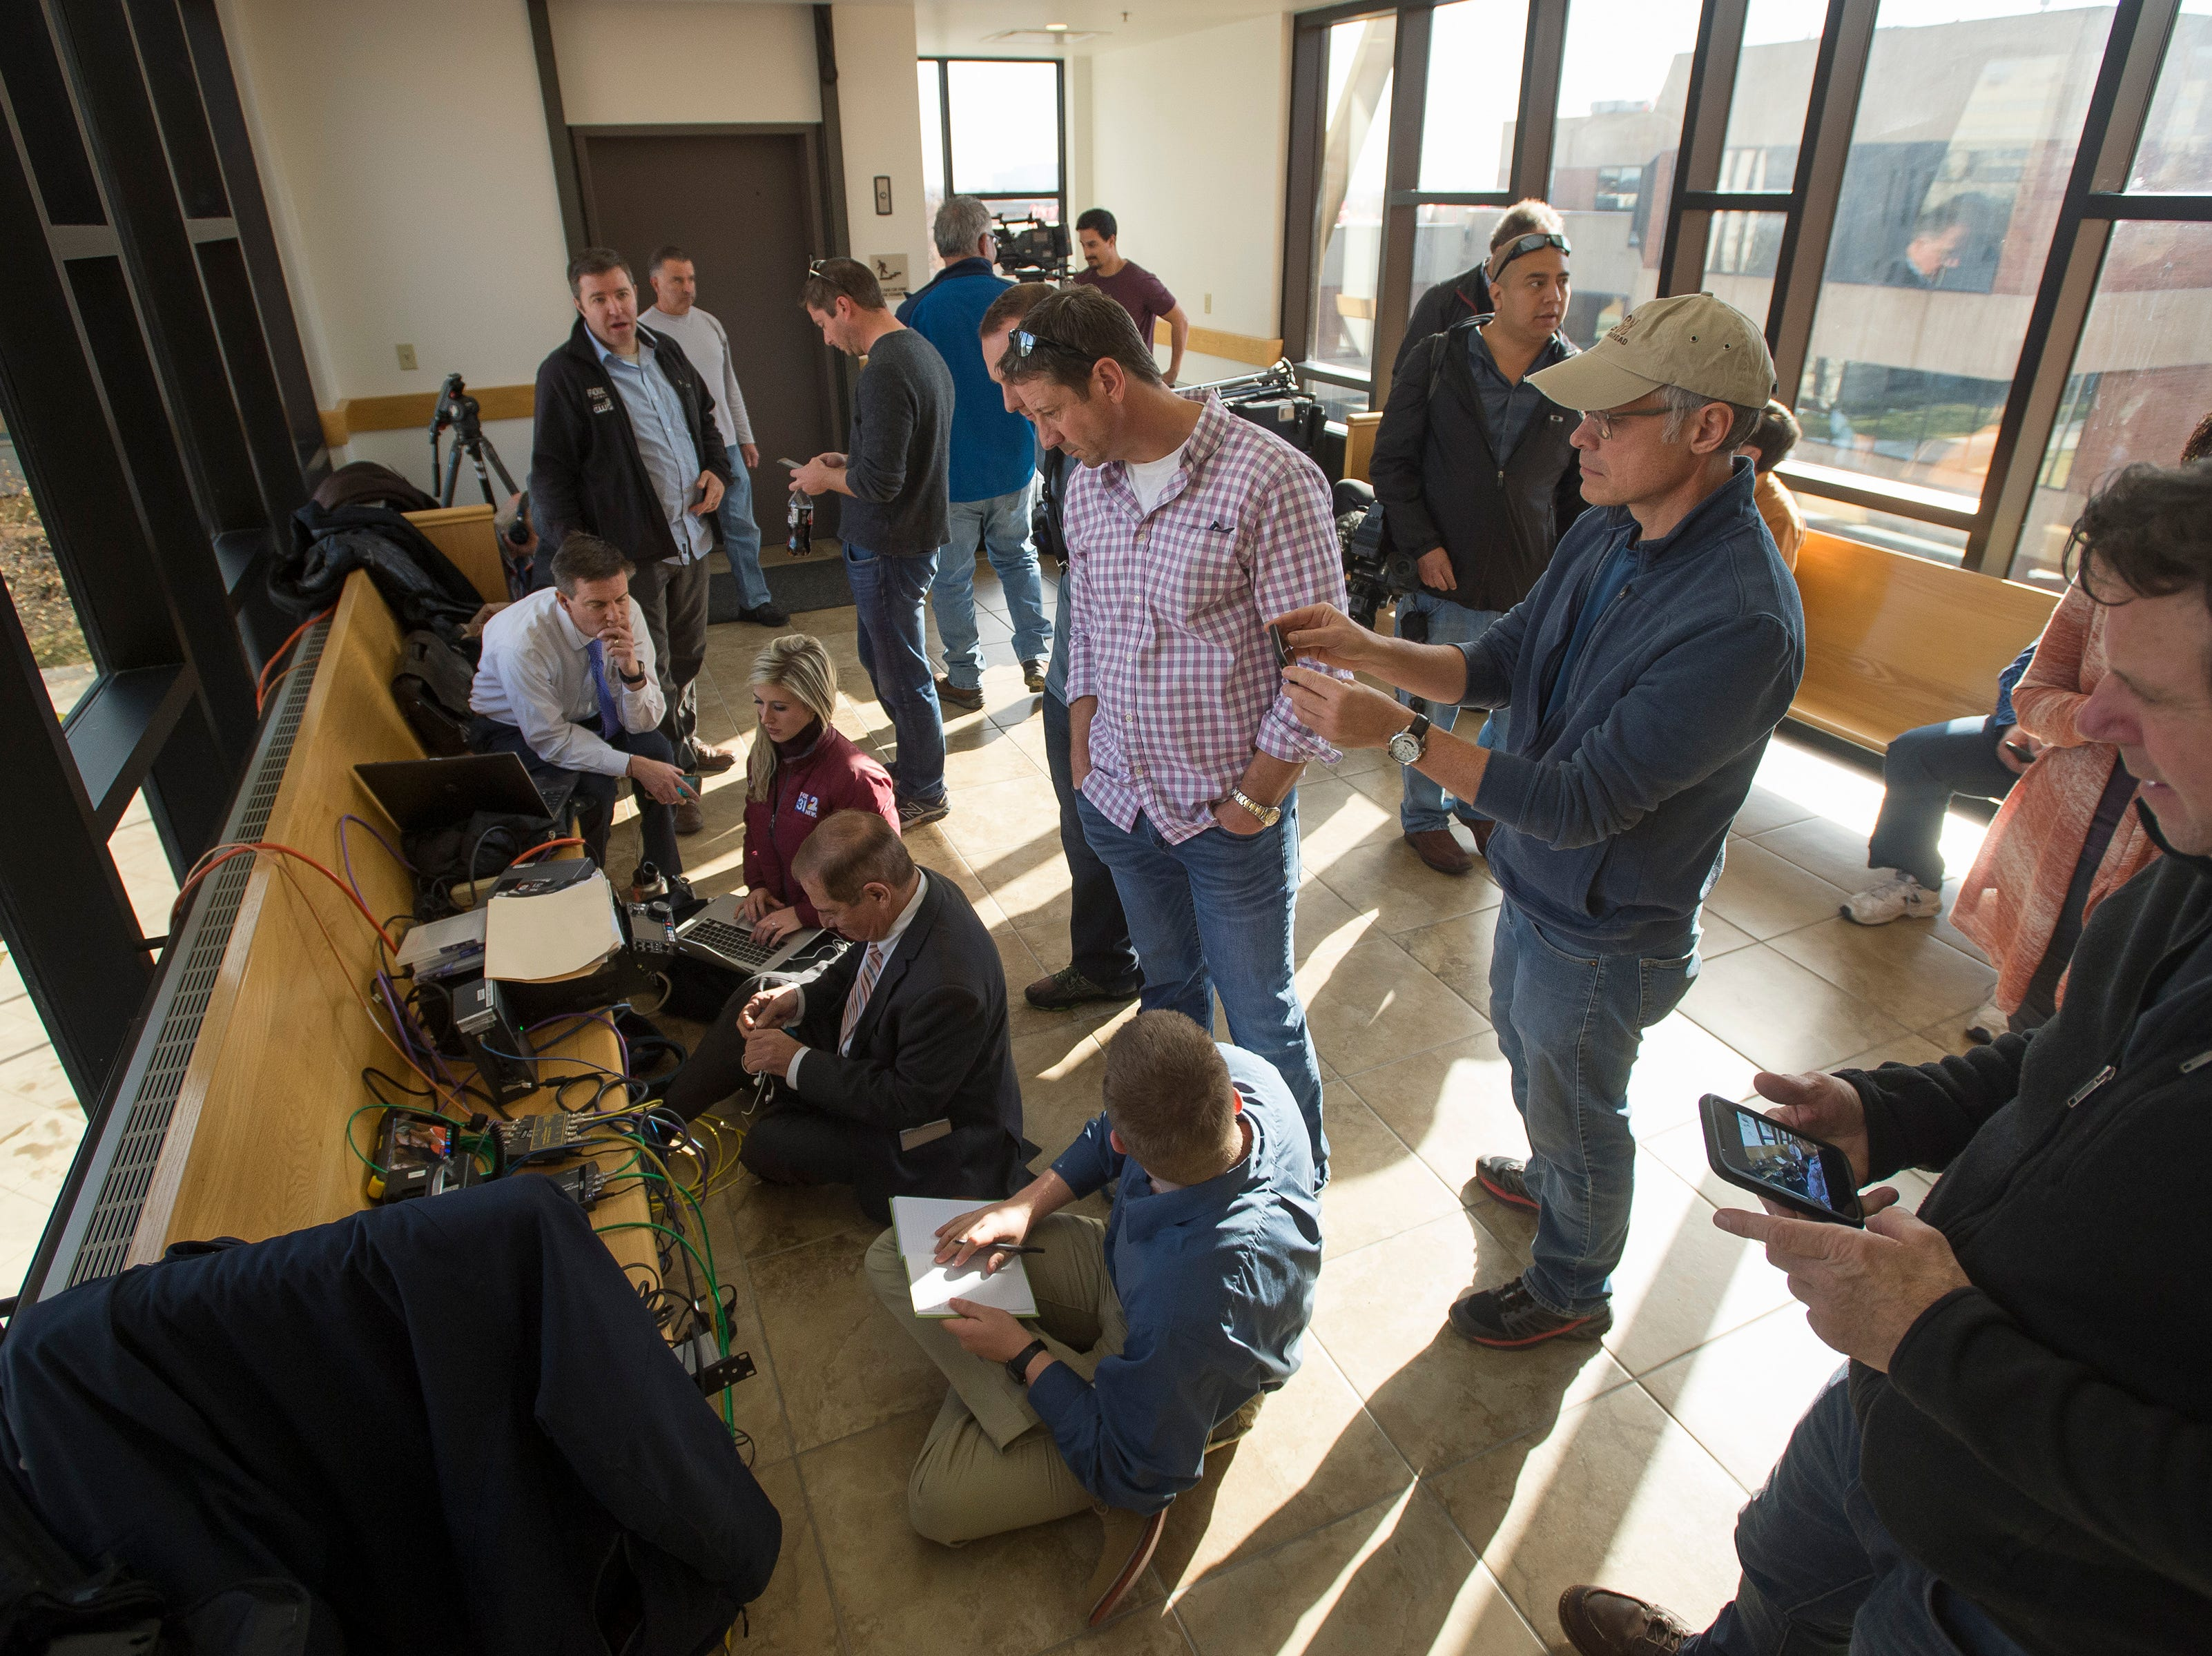 Members with various media outlets gather around a live feed from the courtroom during the sentencing of Christopher Watts for the murder of his pregnant wife Shanann, and two daughters Bella, 4, and Celeste, 3,on Monday, Nov. 19, 2018, at the Weld County courthouse in Greeley, Colo.